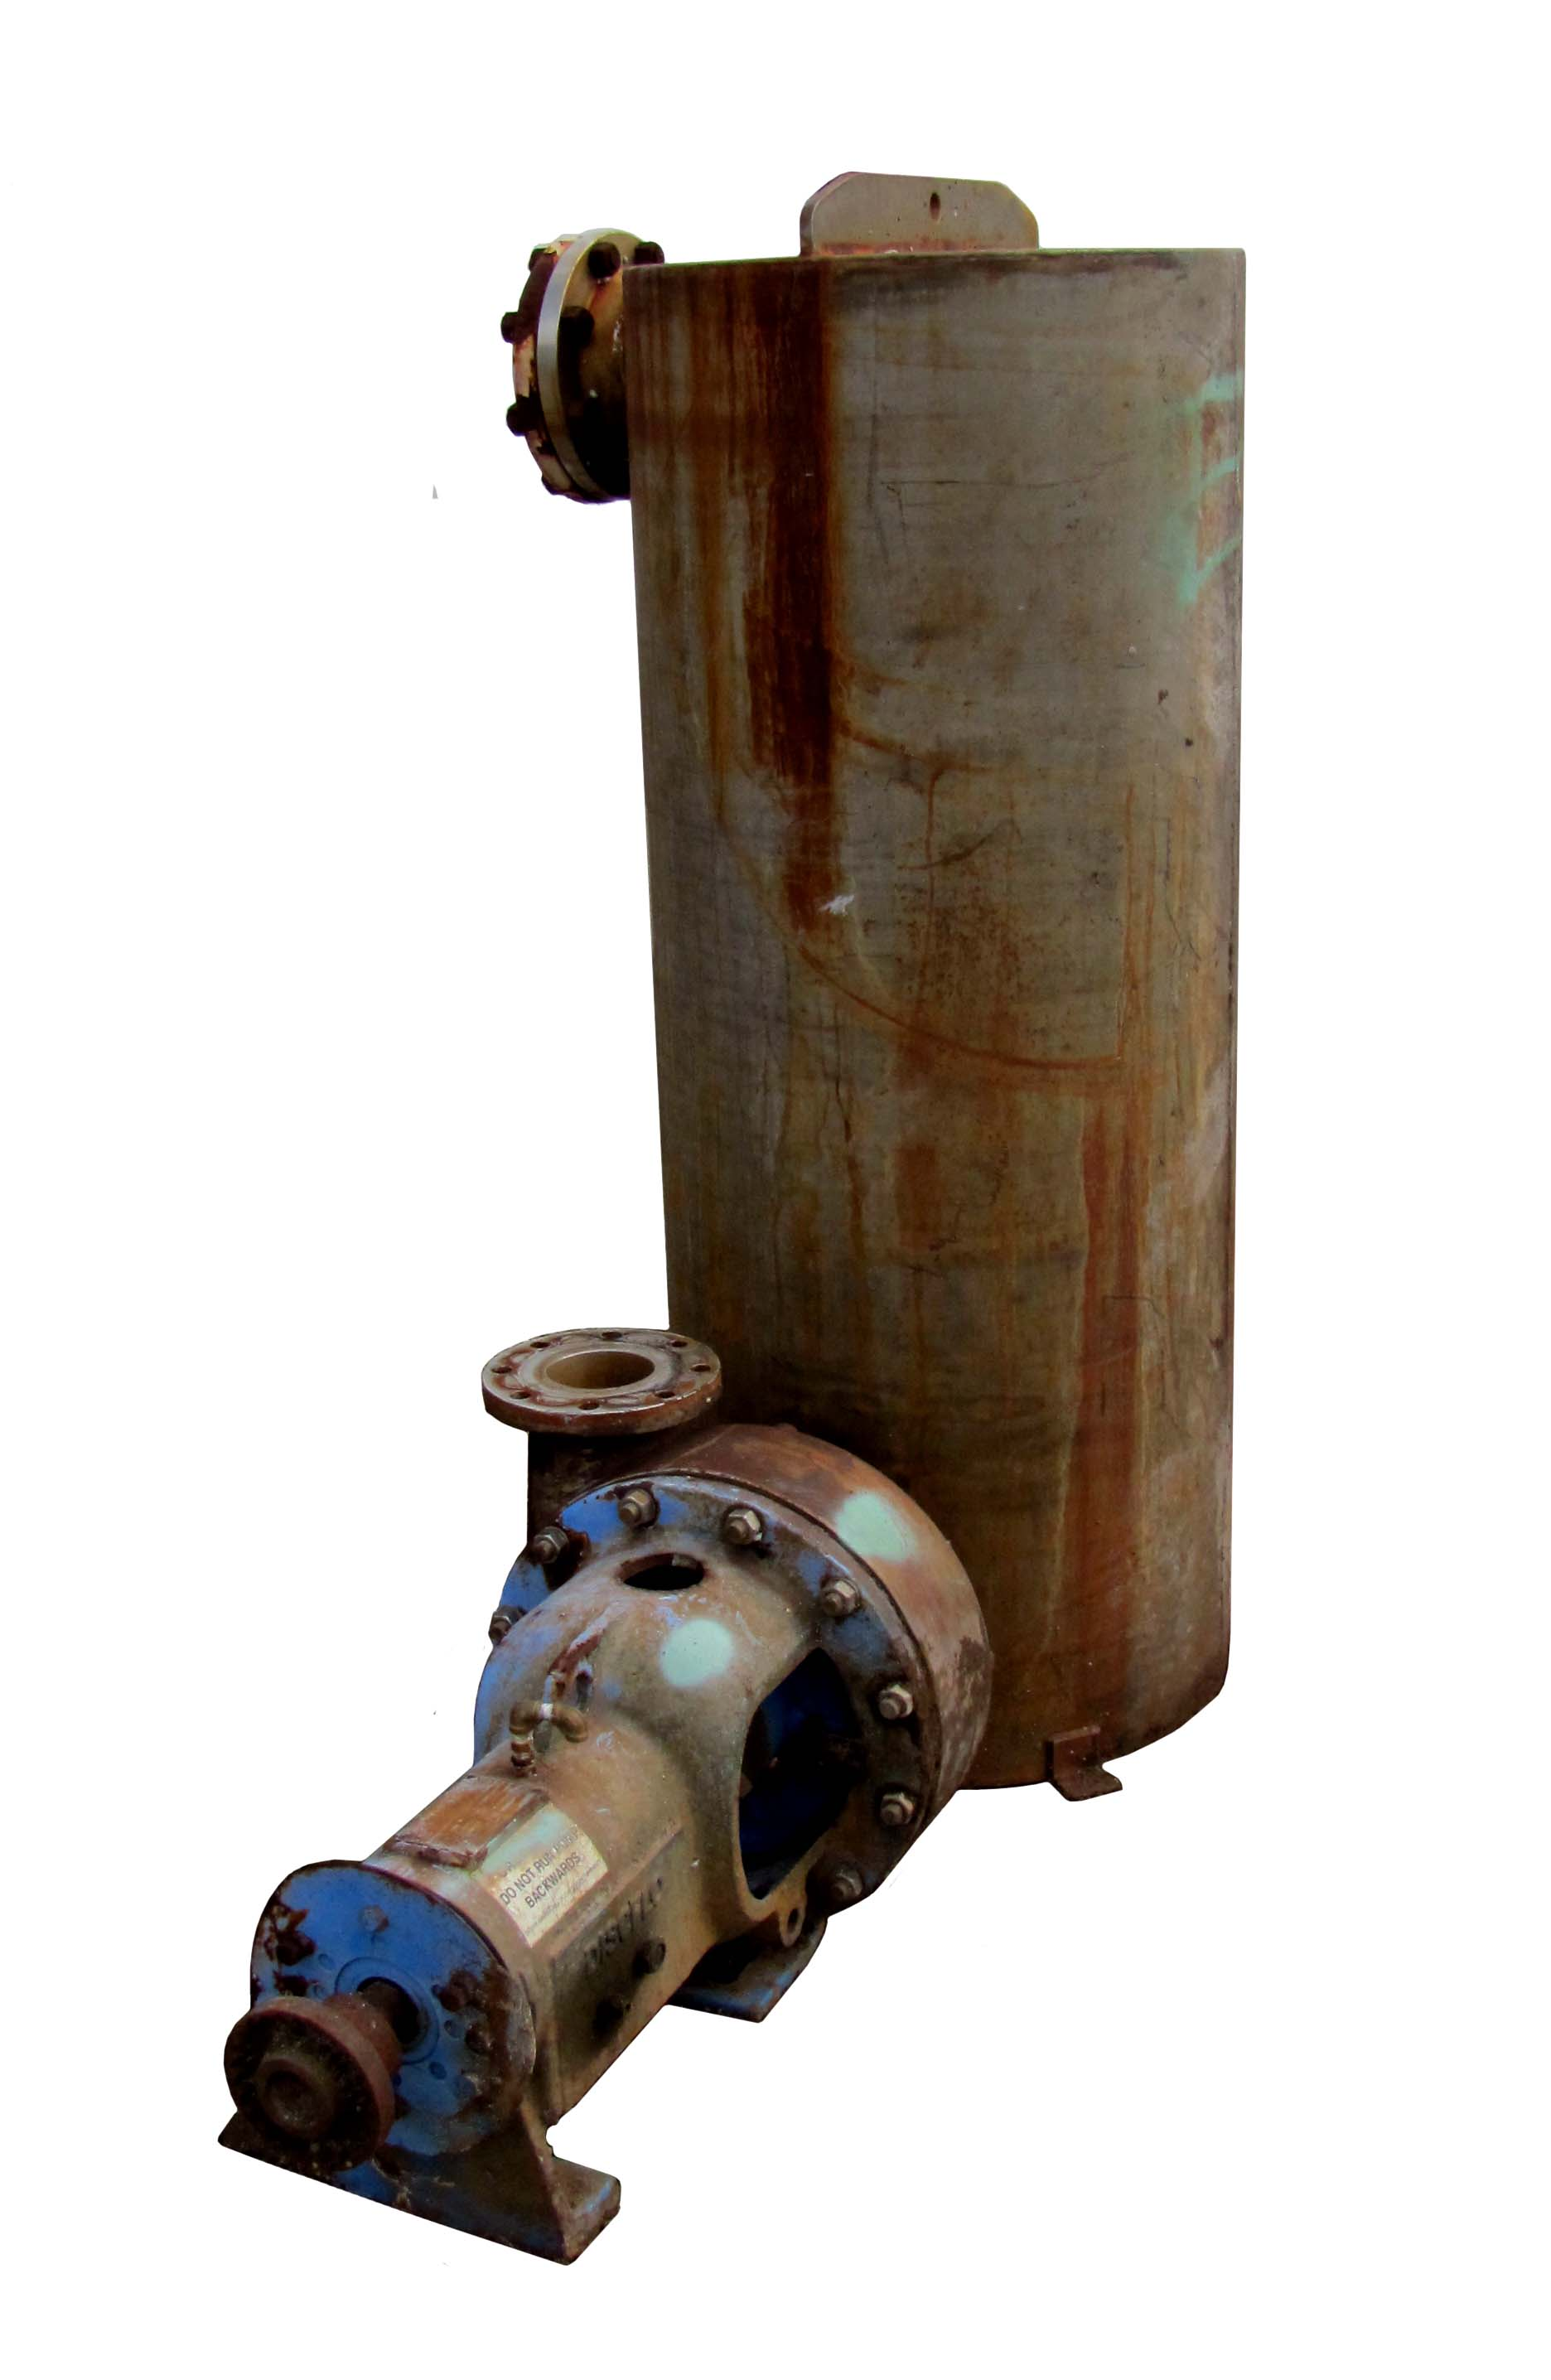 Discflo Corp. Stainless Steel pump with suction pot (2' dia x 5' T/T).  Pump is 6x4 rated 50 GPM.